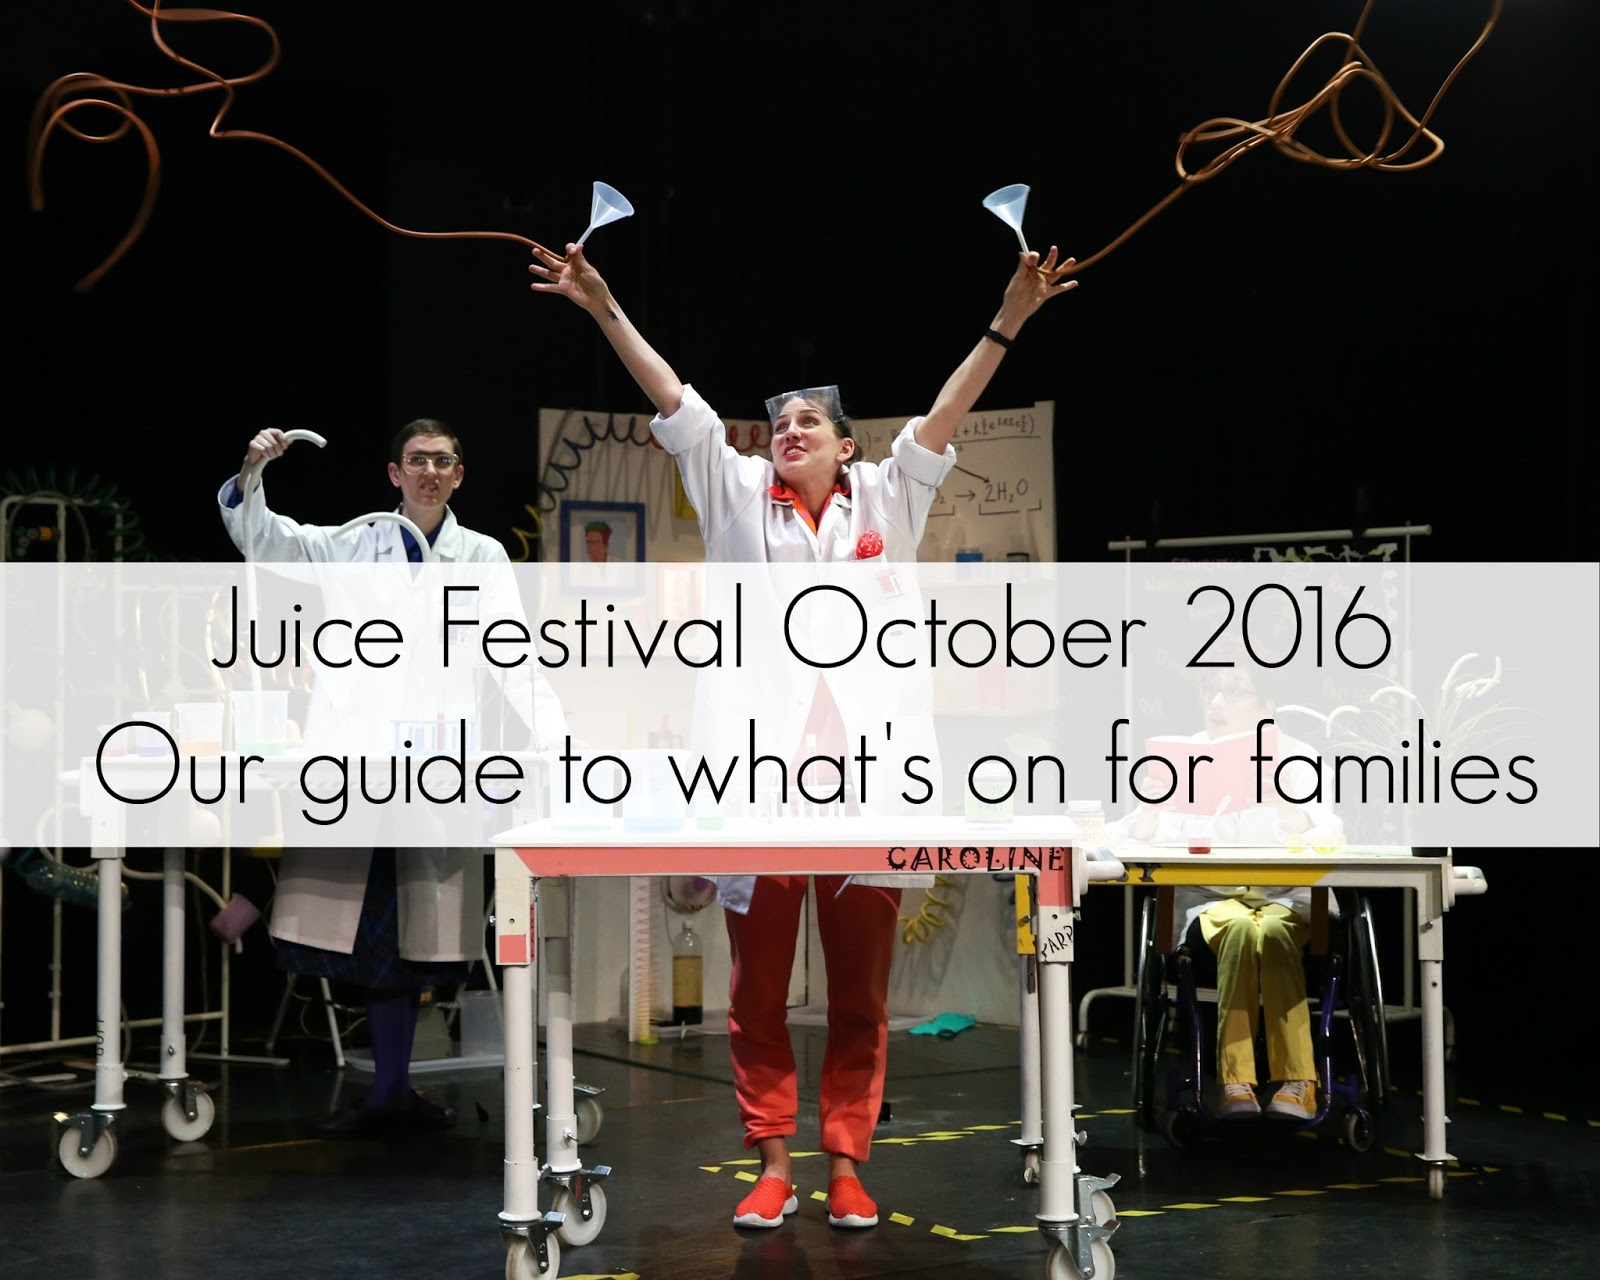 The ULTIMATE guide to what's on at Juice Festival for families | October Half Term